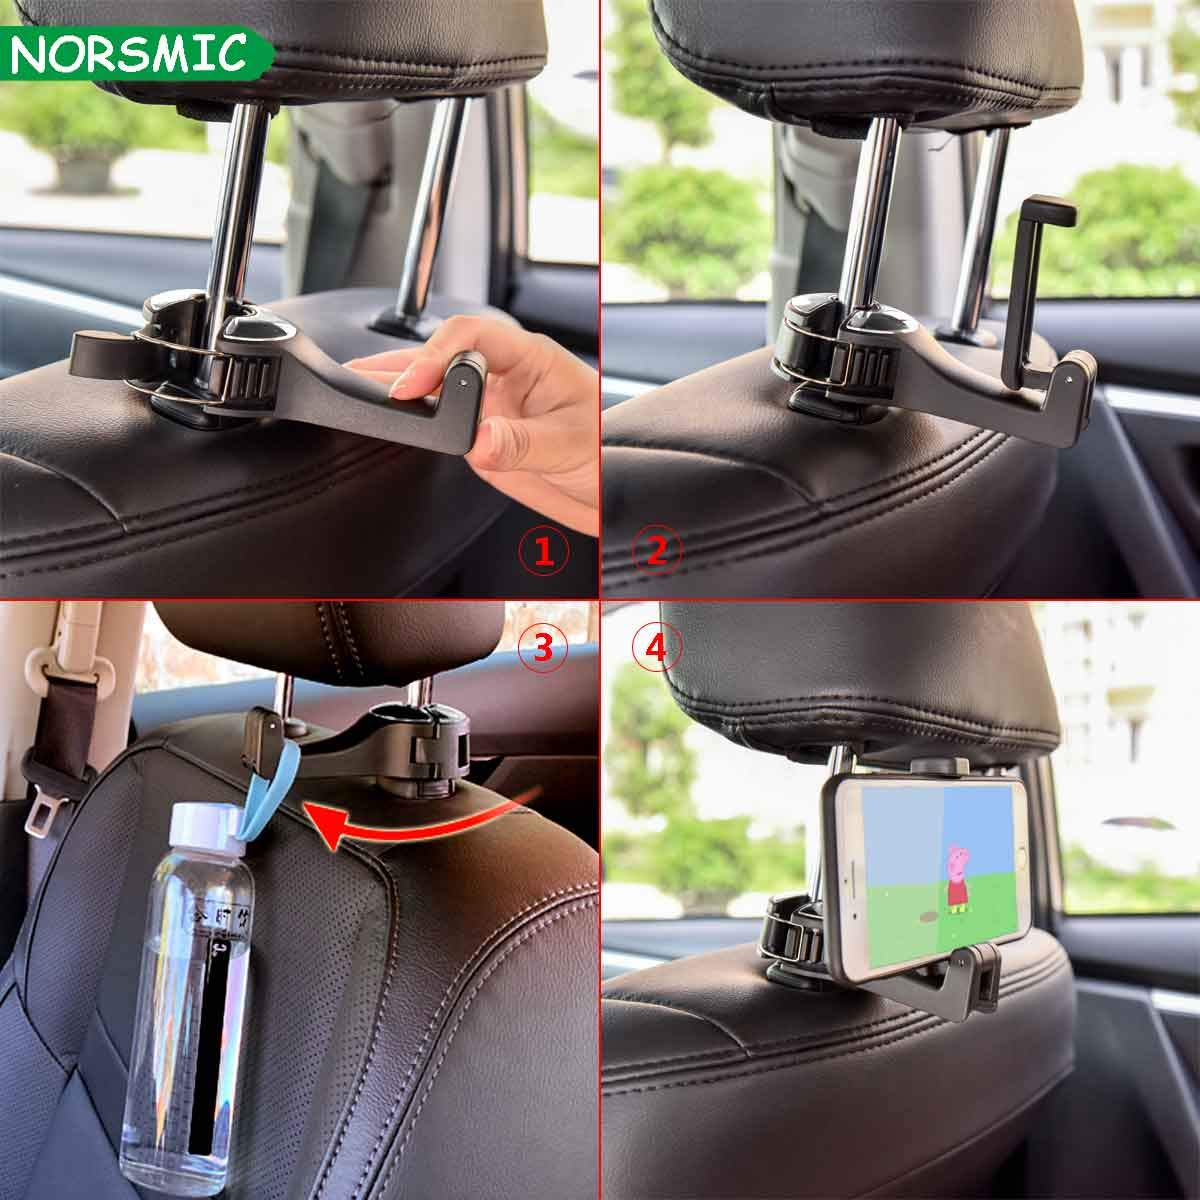 2Pack Scratch Free Grocery Cloth Universal for Most Car and Phon 360/° Lock Up to 15-lb Hook for Bag Purse Umbrella Stable and Vibration Absorbent Car Headrest Hook /& Phone Mount Holder 2-in-1,